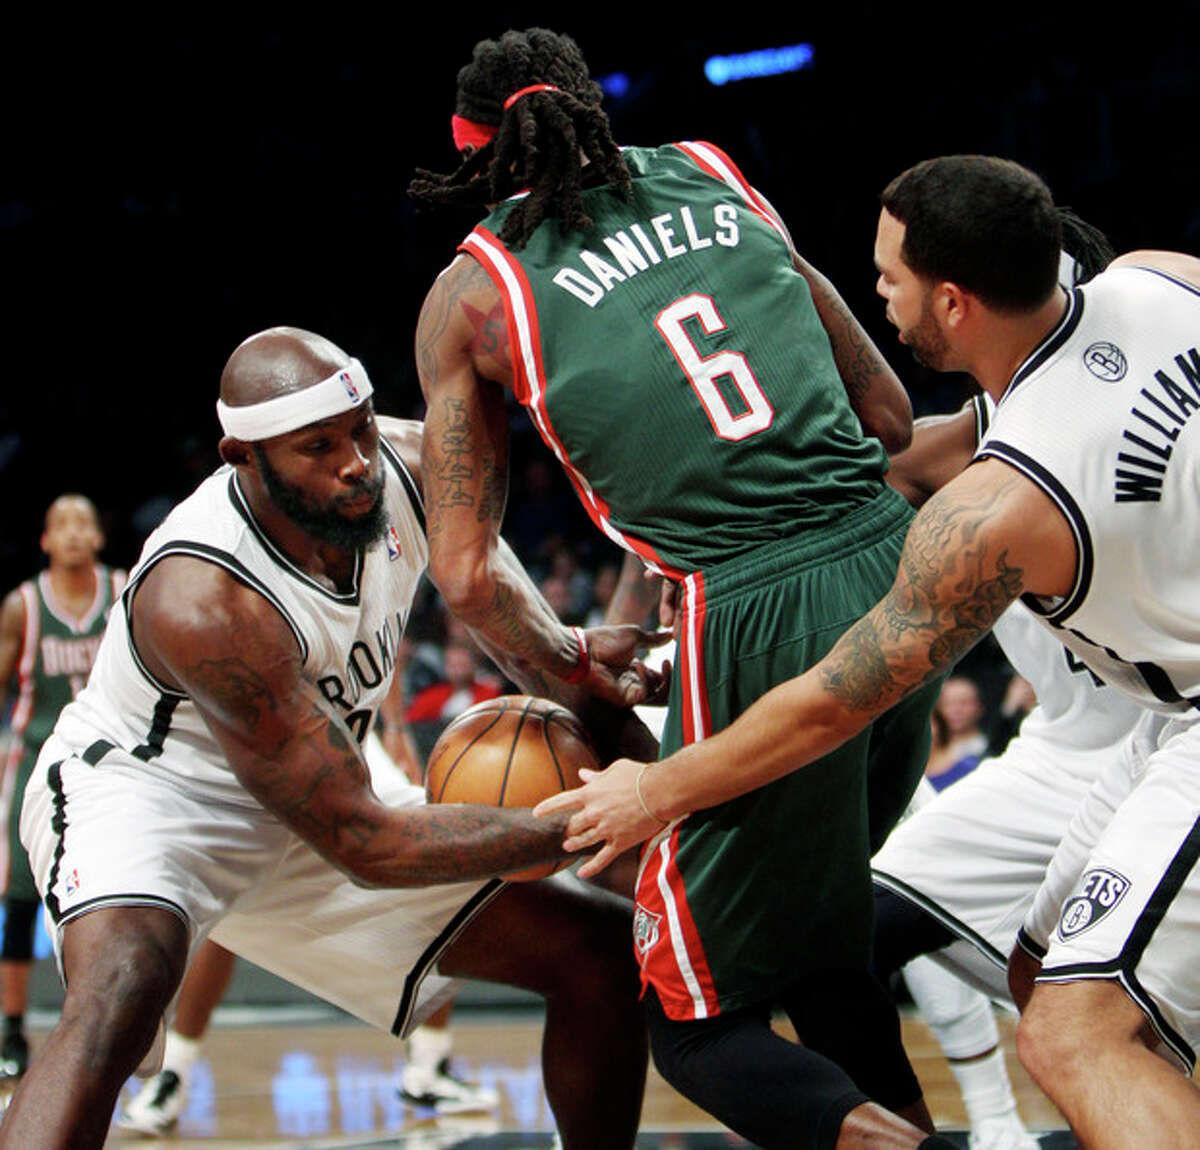 Brooklyn Nets' Reggie Evans, left, steals the ball from Milwaukee Bucks' Marquis Daniels, center, as Nets' Deron Williams helps during the first half of an NBA basketball game at Barclays Center, Sunday, Dec. 9, 2012, in New York. (AP Photo/Seth Wenig)